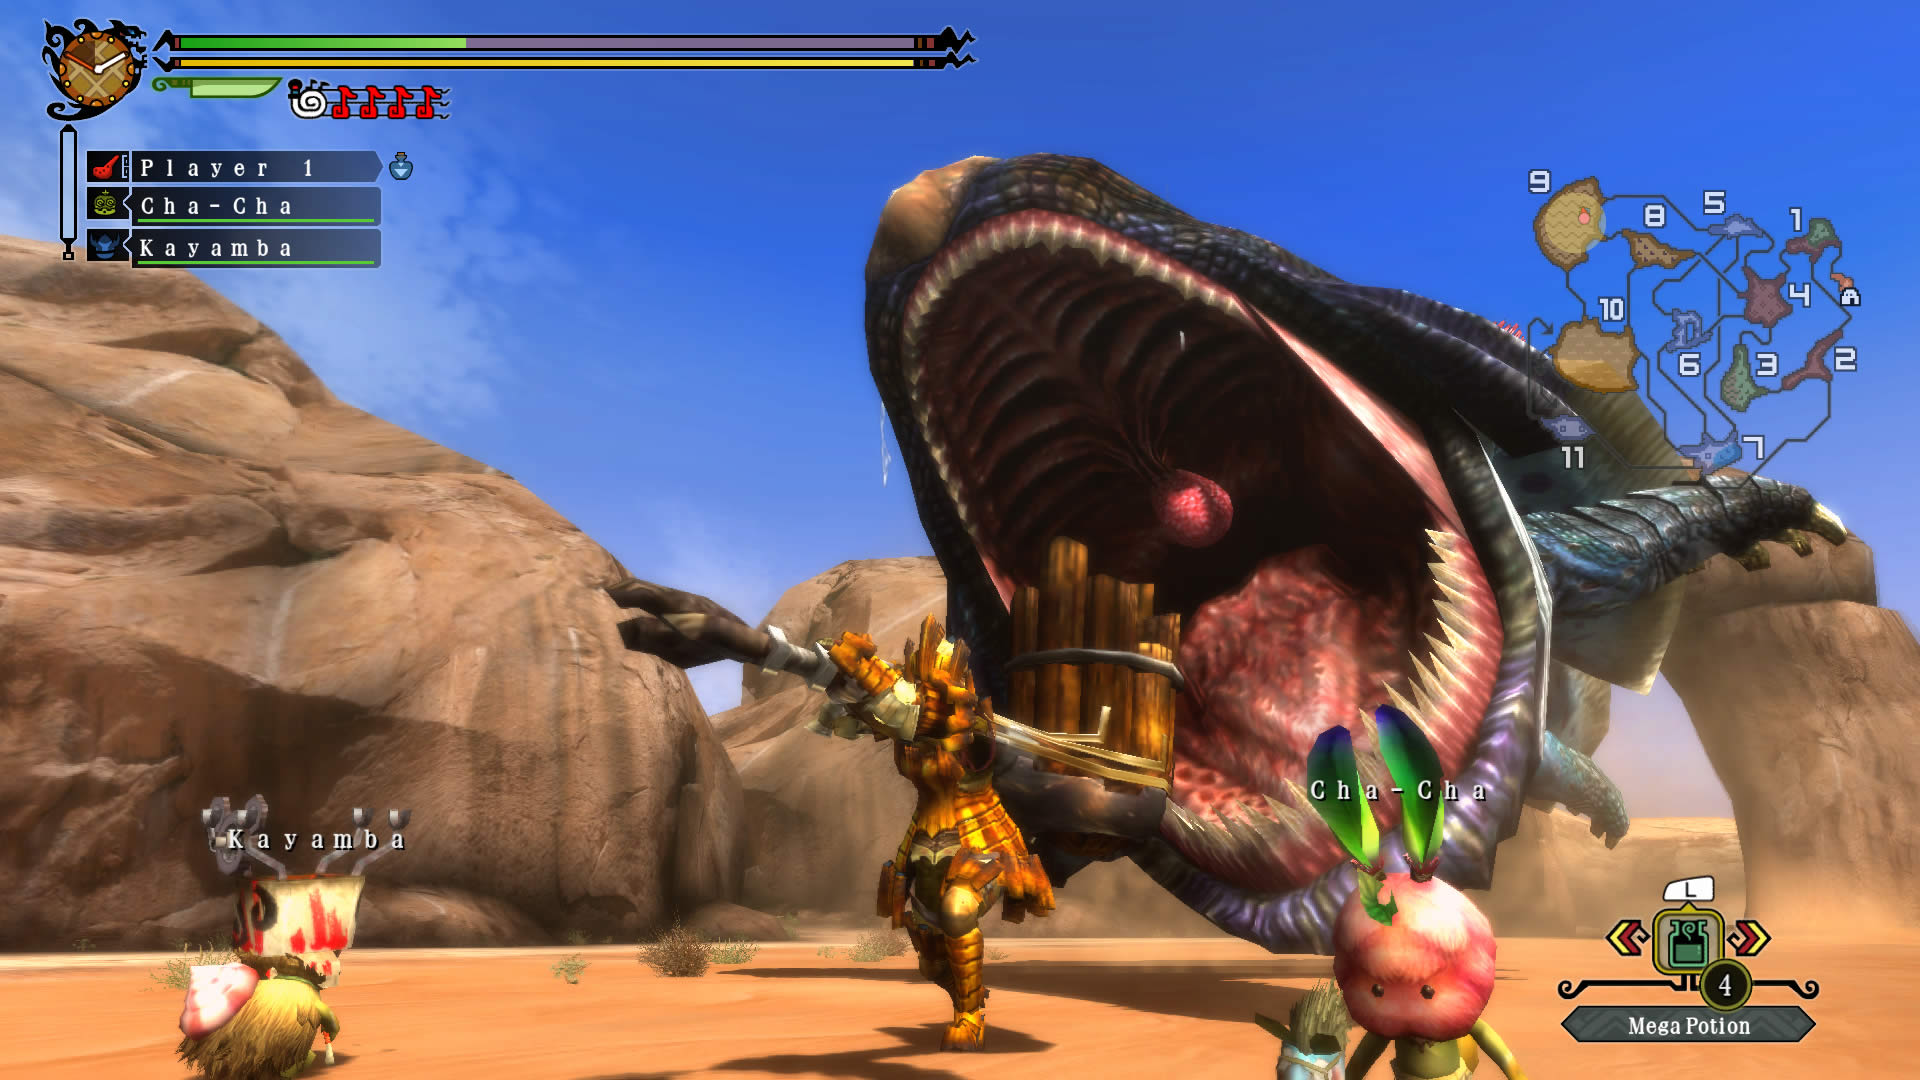 My Thoughts: Monster Hunter 3 Ultimate